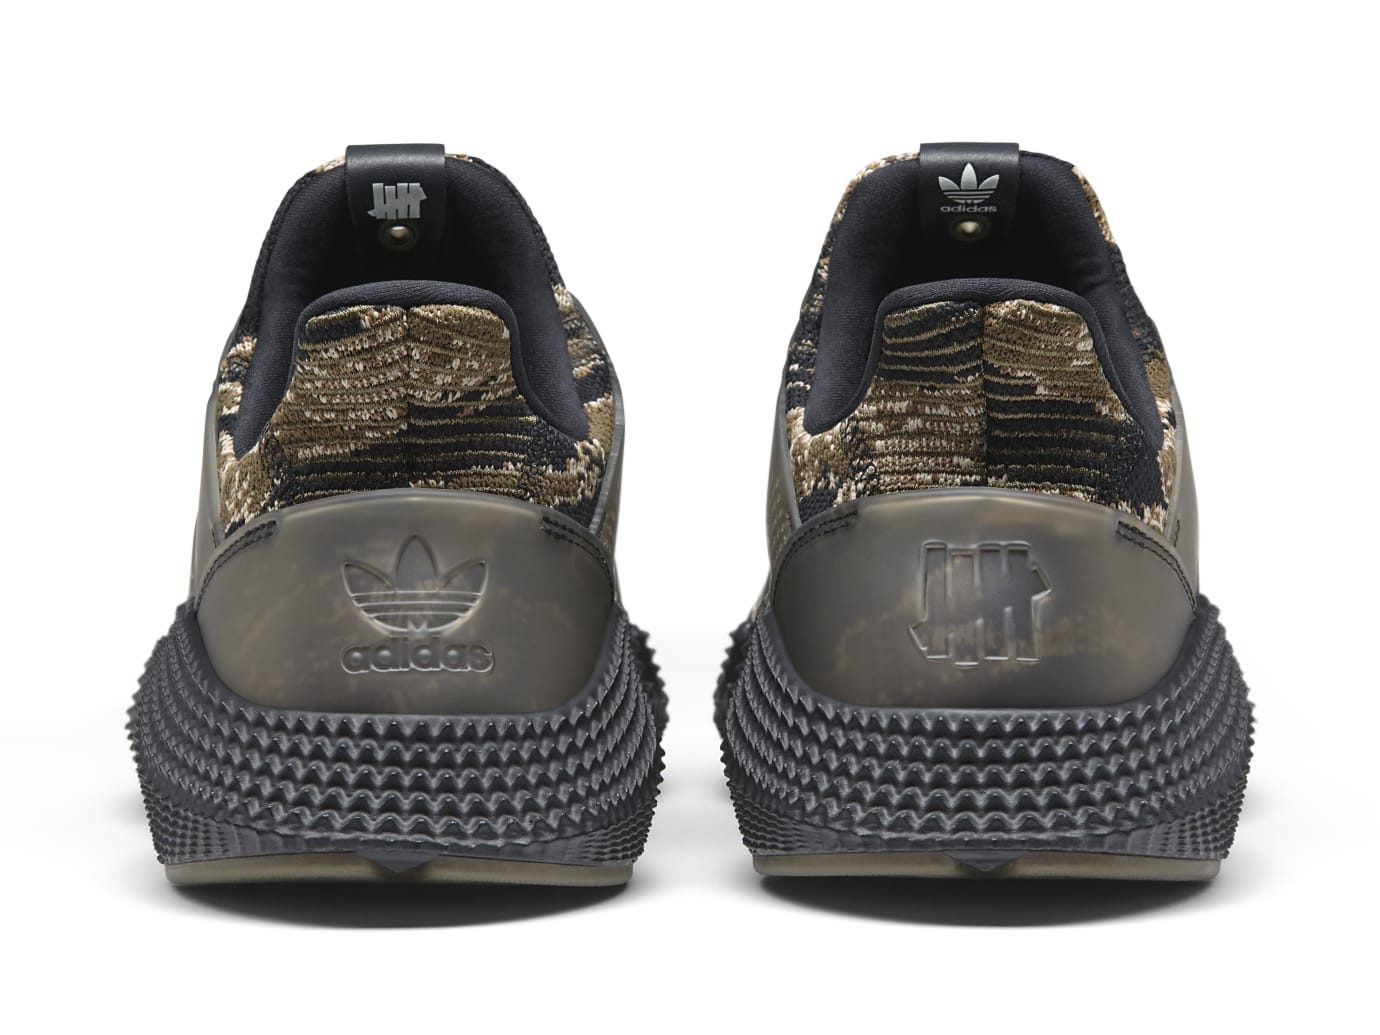 UNDFTD x Adidas Prophere Core Black/Trace Olive-Raw Gold AC8198 (Heel)